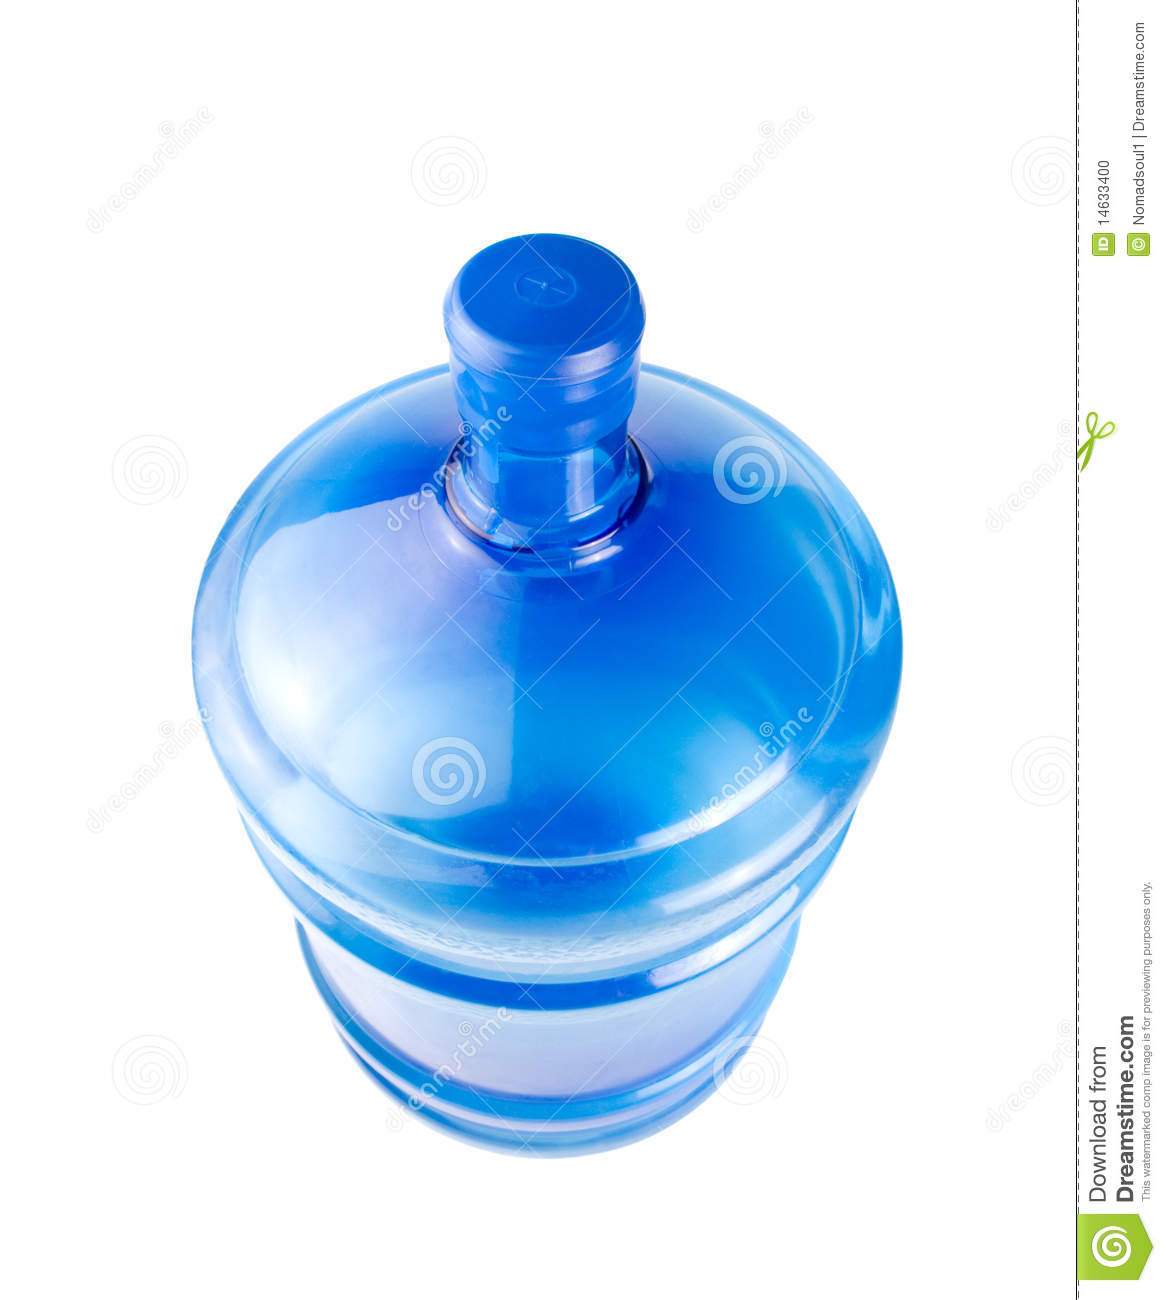 Bottled potable water for cooler royalty free stock image for Potable water